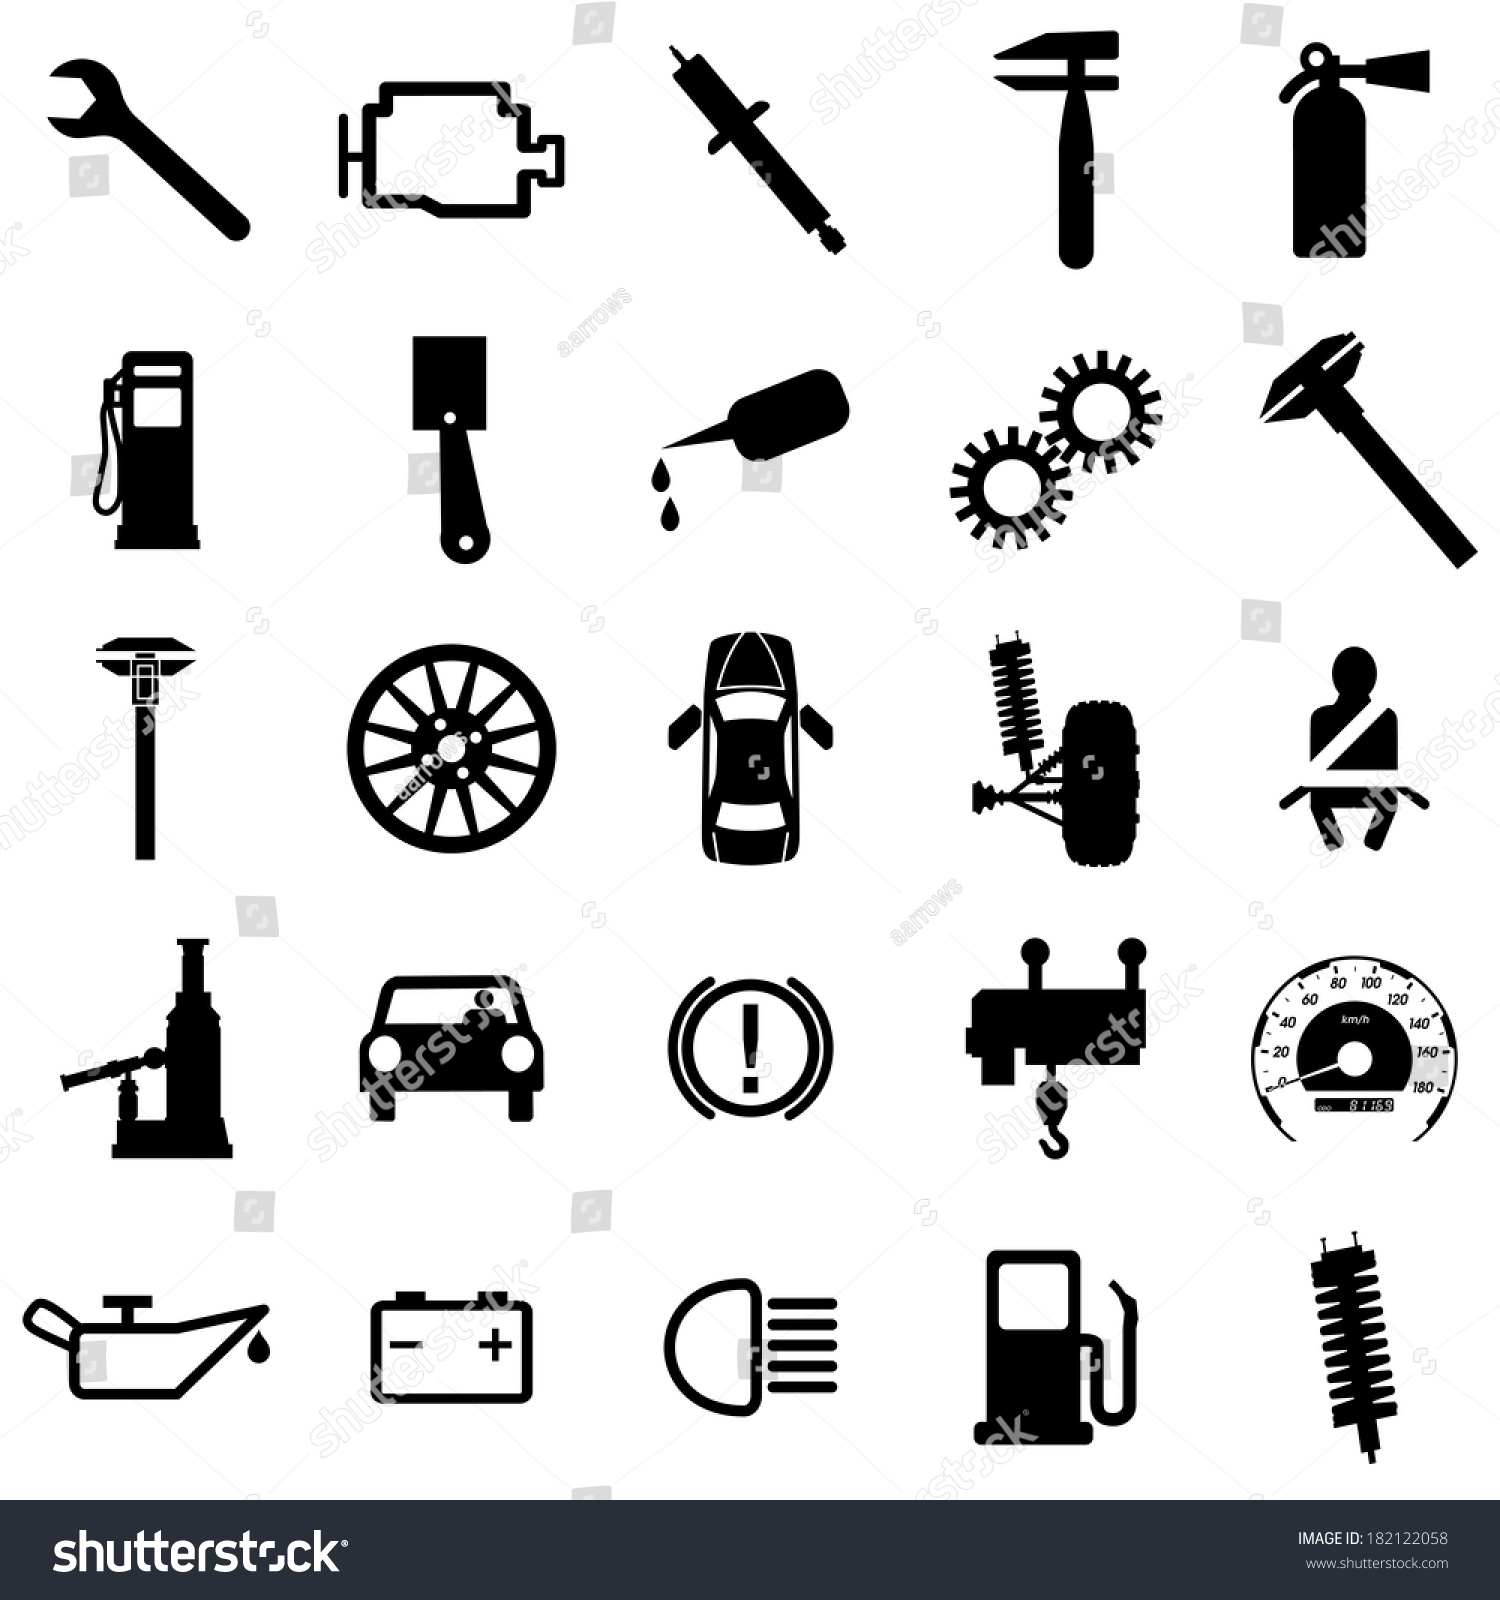 Collection flat icons car symbols illustration stock illustration car symbols illustration biocorpaavc Gallery